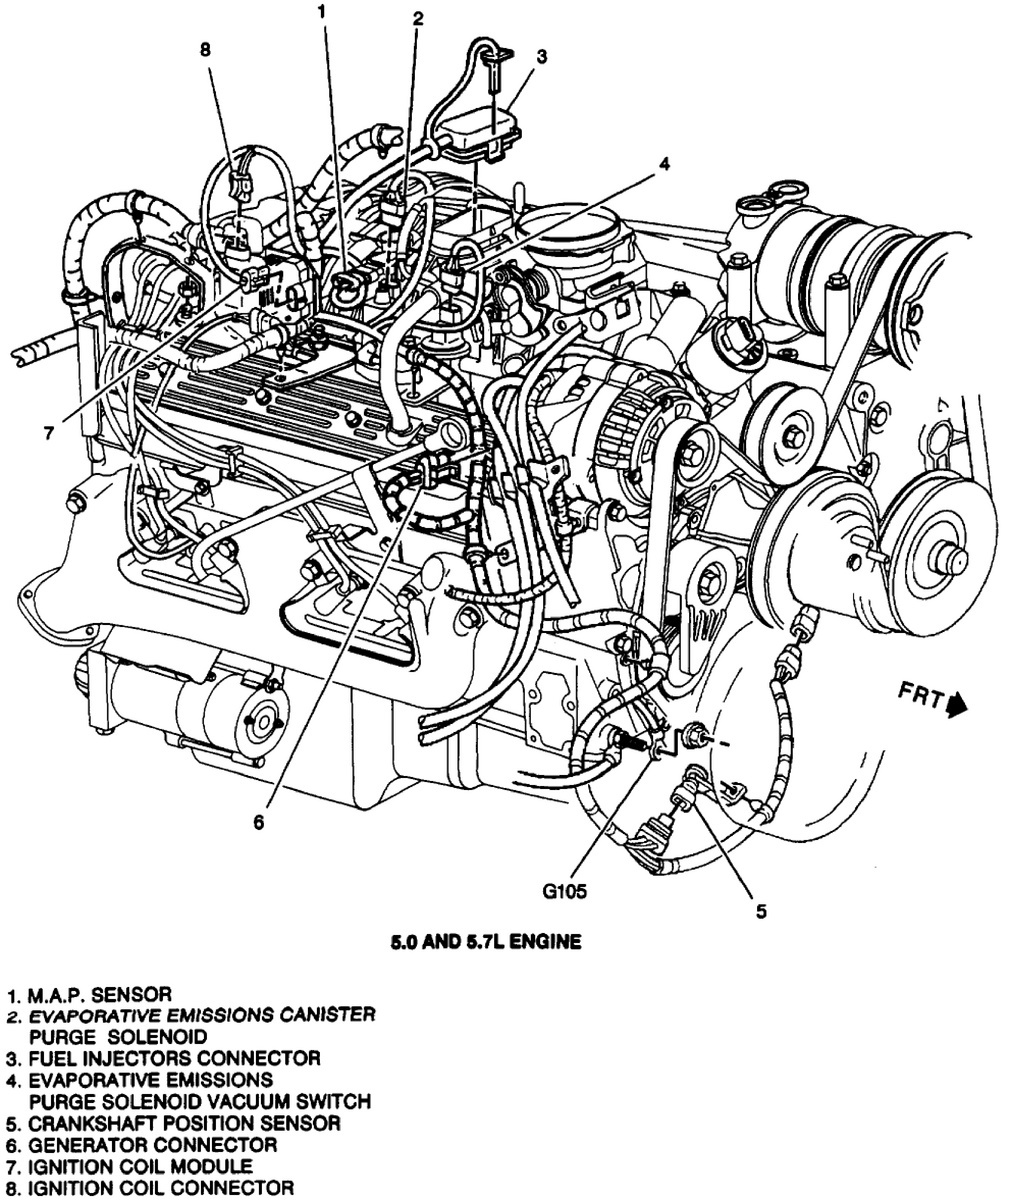 1989 Chevy 350 Engine Diagram The Portal And Forum Of Wiring Trailer For Suburban Parts Third Level Rh 7 10 12 Jacobwinterstein Com Corvette Ecm Belt